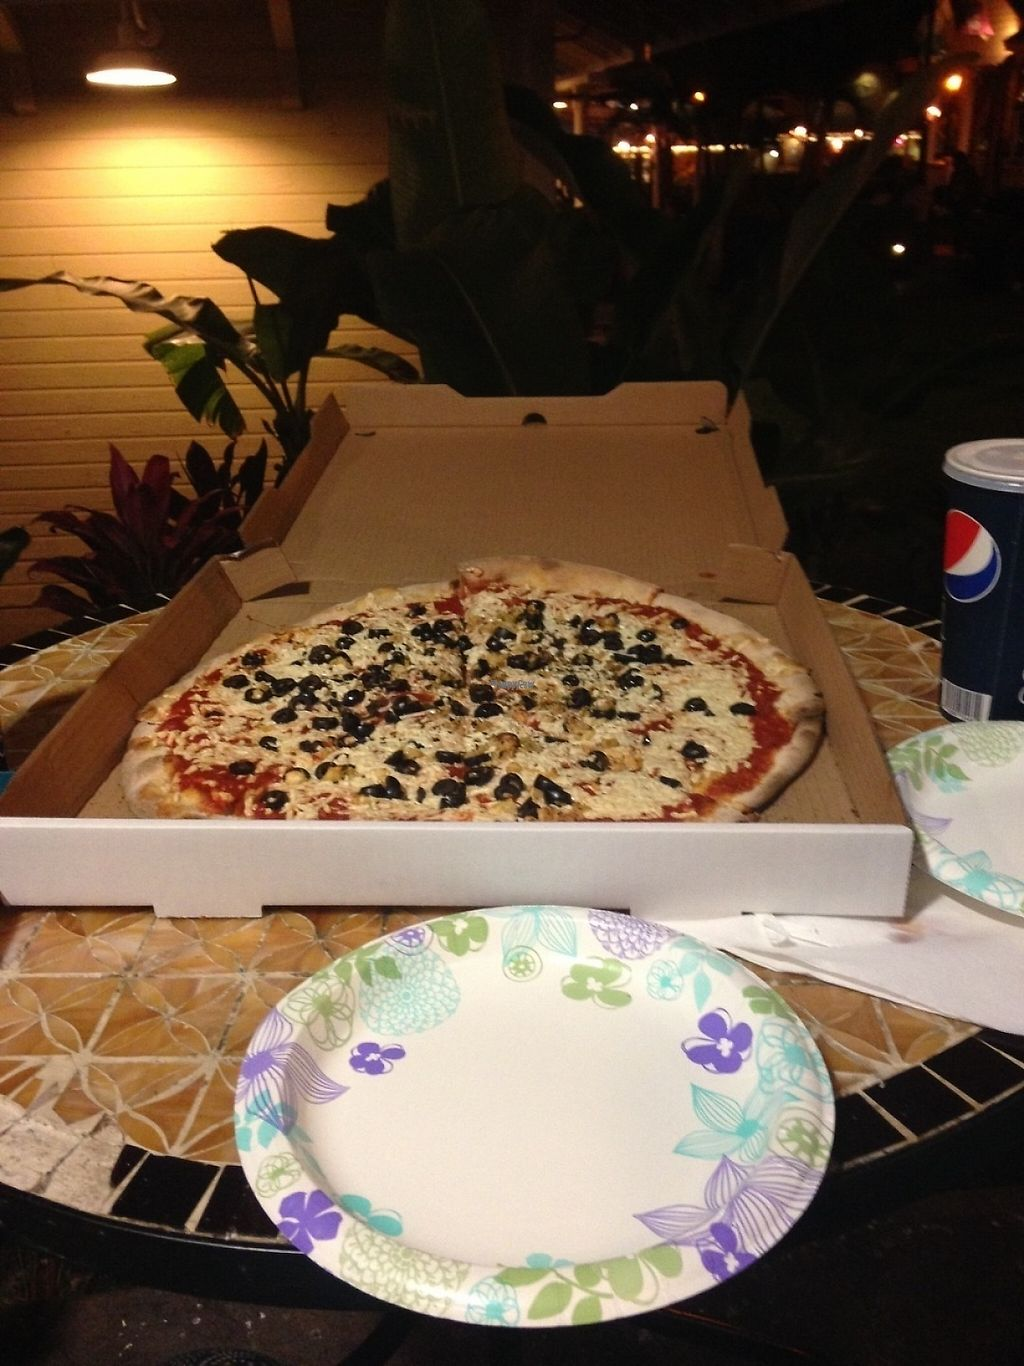 """Photo of Get Sum Pizza  by <a href=""""/members/profile/smfortissimo"""">smfortissimo</a> <br/>Large vegan cheese pizza with black olives and garlic <br/> March 25, 2017  - <a href='/contact/abuse/image/60803/240467'>Report</a>"""